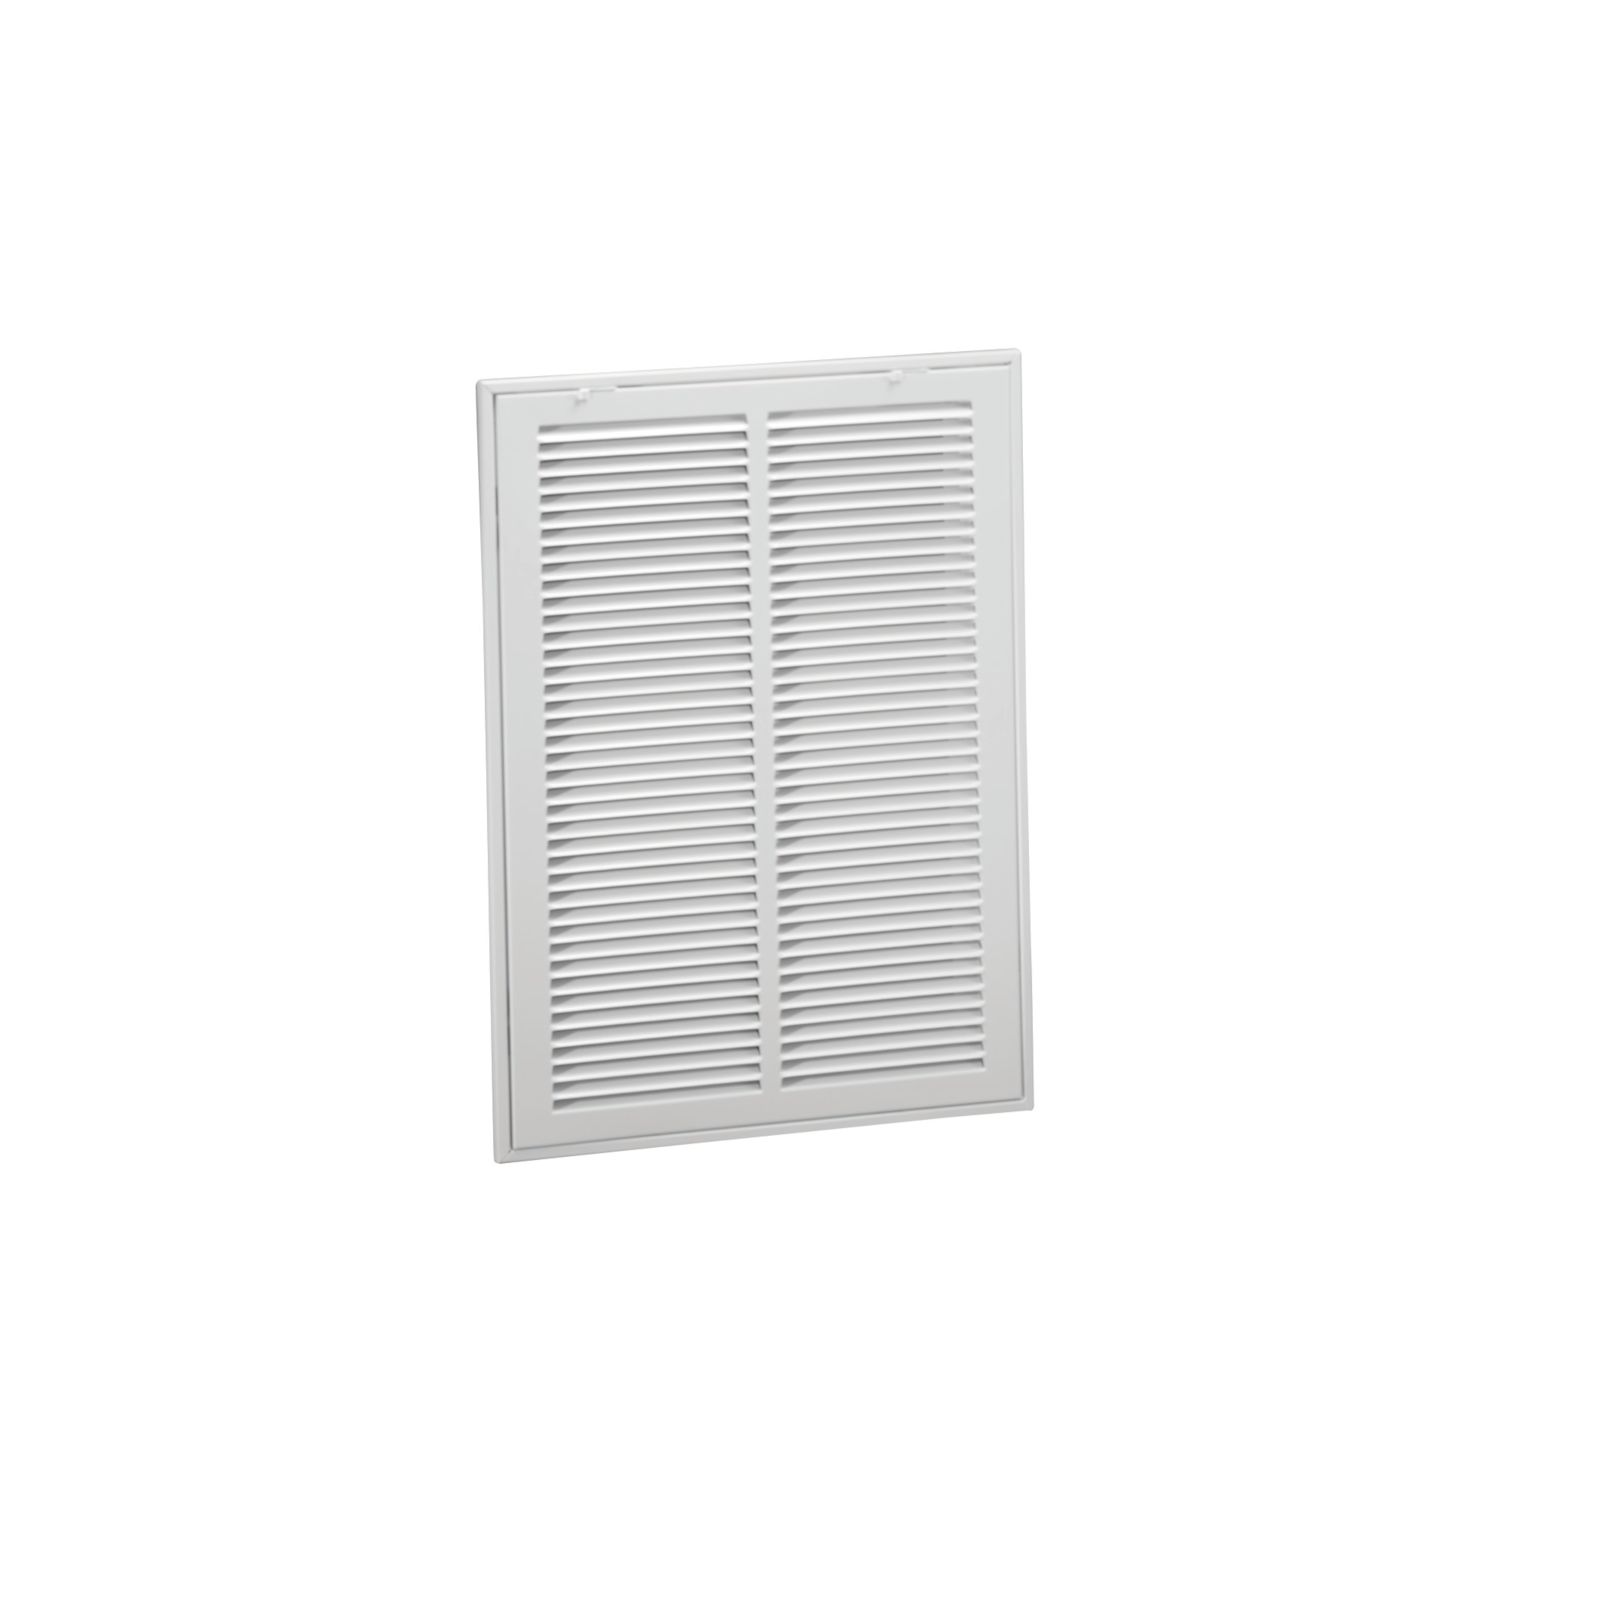 "Hart & Cooley 043517 - #673 Steel Return Air Filter Grille, White Finish, 20"" X 14"""